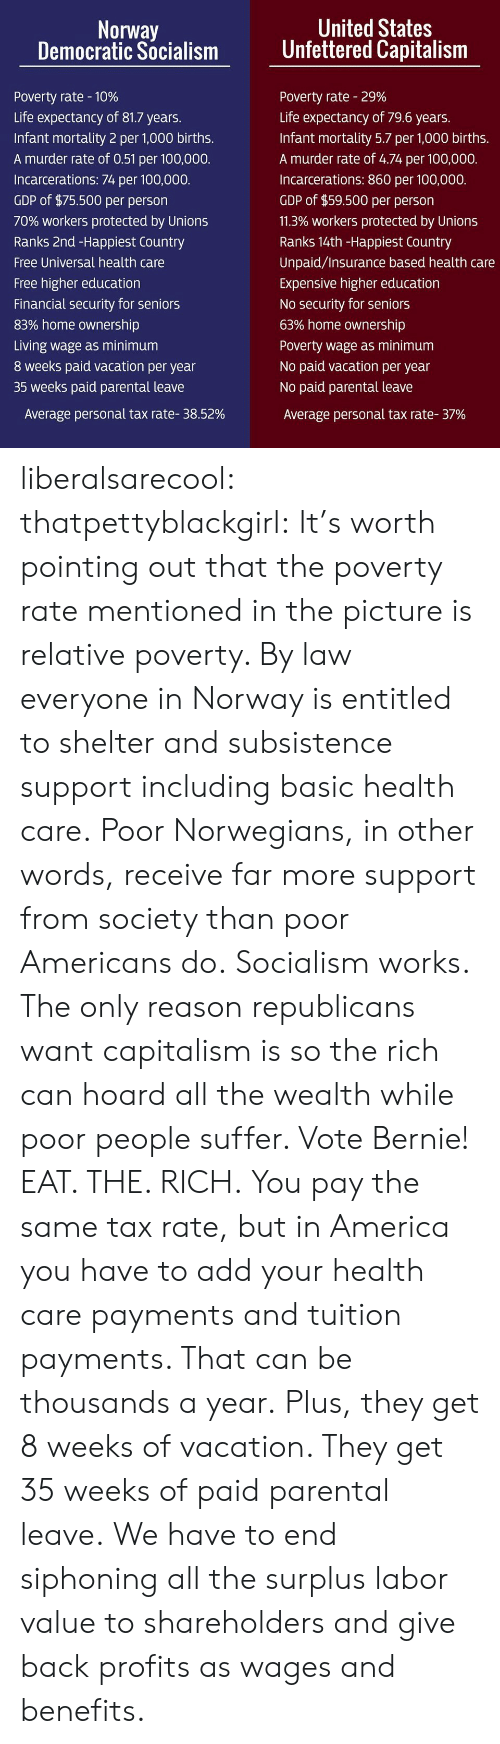 democratic: Norway  Democratic Socialism  United States  Unfettered Capitalism  Poverty rate-10%  Life expectancy of 81.7 years  Infant mortality 2 per 1,000 births.  A murder rate of 0.51 per 100,000.  Incarcerations: 74 per 100,000.  GDP of $75.500 per person  70% workers protected by Unions  Ranks 2nd -Happiest Country  Free Universal health care  Free higher education  Financial security for seniors  83% home ownership  Living wage as minimum  8 weeks paid vacation per year  35 weeks paid parental leave  Poverty rate-29%  Life expectancy of 79.6 years.  Infant mortality 5.7 per 1,000 births.  A murder rate of 4.74 per 100,000.  Incarcerations: 860 per 100,000.  GDP of $59.500 per person  11.3% workers protected by Unions  Ranks 14th-Happiest Country  Unpaid/Insurance based health care  Expensive higher education  No security for seniors  63% home ownership  Poverty wage as minimum  No paid vacation per year  No paid parental leave  Average personal tax rate-37%  Average personal tax rate-38.52% liberalsarecool: thatpettyblackgirl:   It's  worth pointing out that the poverty rate mentioned in the picture is  relative poverty. By law everyone in Norway is entitled to shelter and  subsistence support including basic health care. Poor Norwegians, in other words, receive far more support from society than poor Americans do.  Socialism works. The only reason republicans want capitalism is so the rich can hoard all the wealth while poor people suffer. Vote Bernie!   EAT. THE. RICH.     You pay the same tax rate, but in America you have to add your health care payments and tuition payments. That can be thousands a year. Plus, they get 8 weeks of vacation. They get 35 weeks of paid parental leave. We have to end siphoning all the surplus labor value to shareholders and give back profits as wages and benefits.